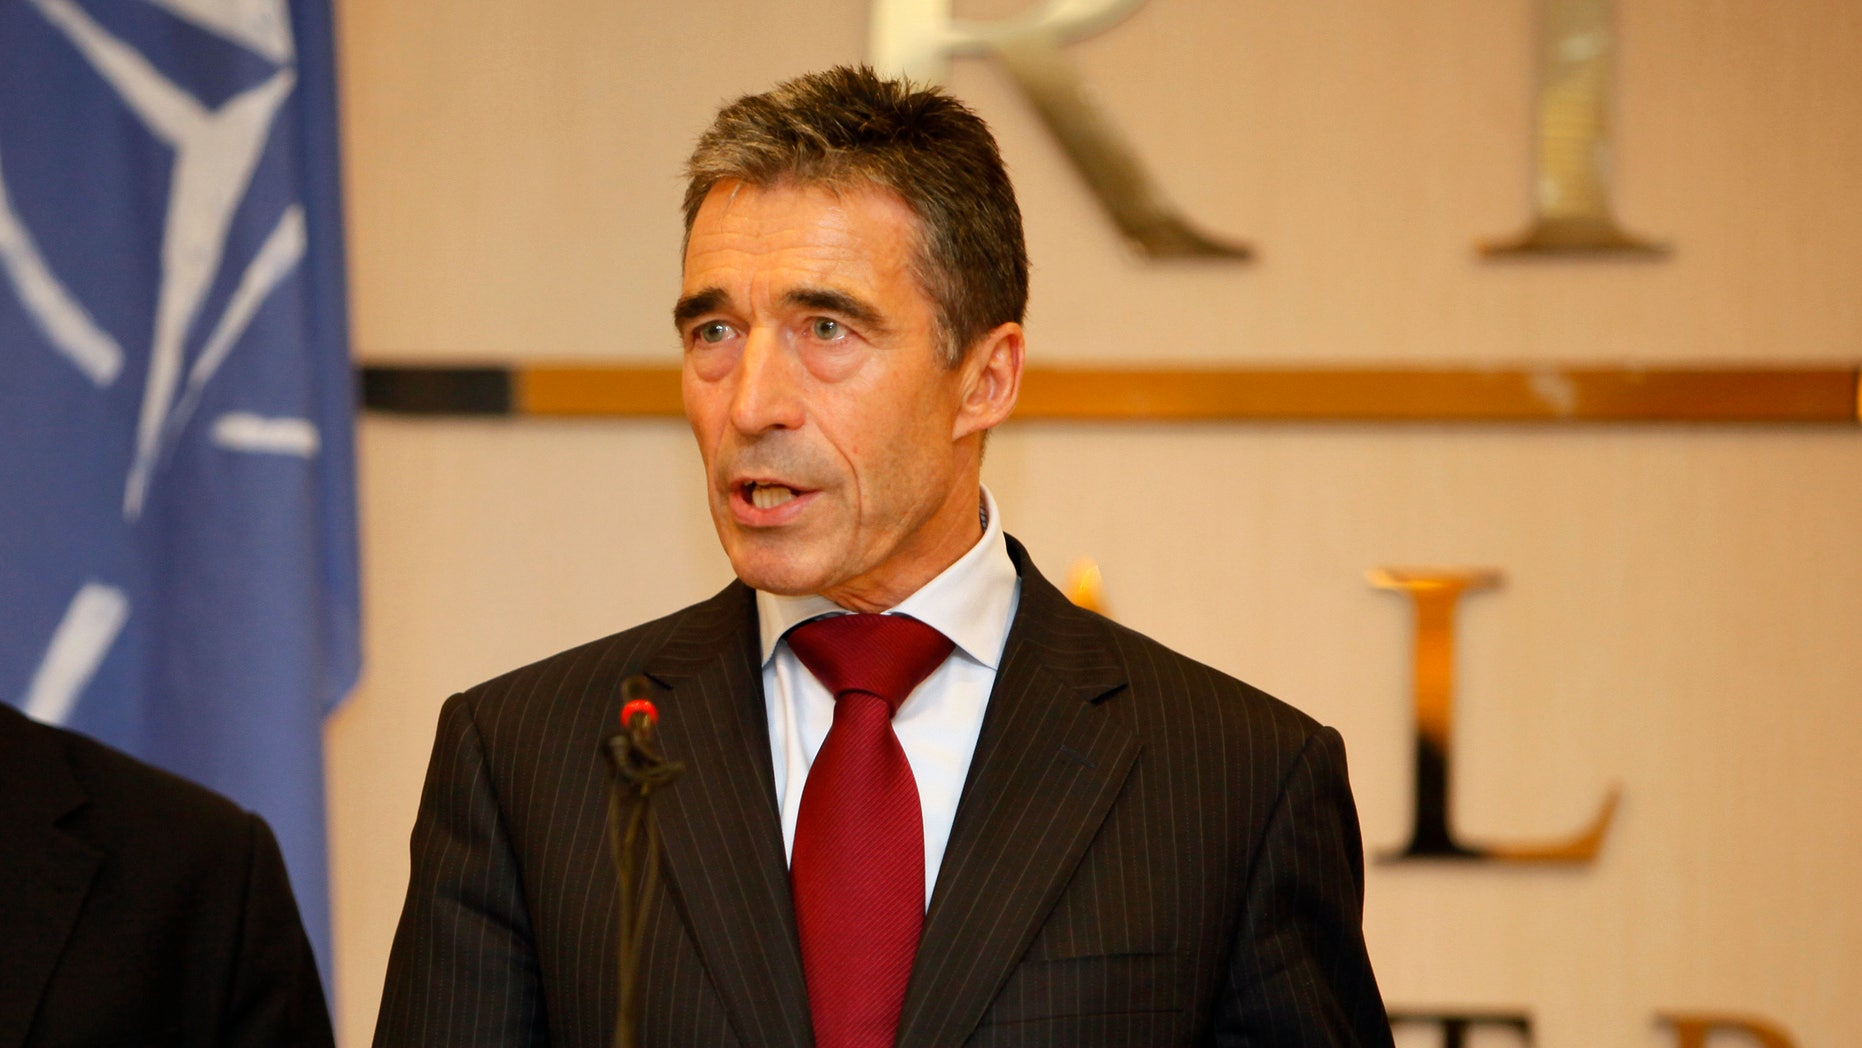 """October 31: NATO Secretary-General Anders Fogh Rasmussen speaks to reporters in Tripoli, Libya. NATO's top official is praising the Libyans for their """"courage, determination and sacrifice"""" to oust dictator Moammar Gadhafi, and says they have transformed Libya and """"helped change the region."""""""